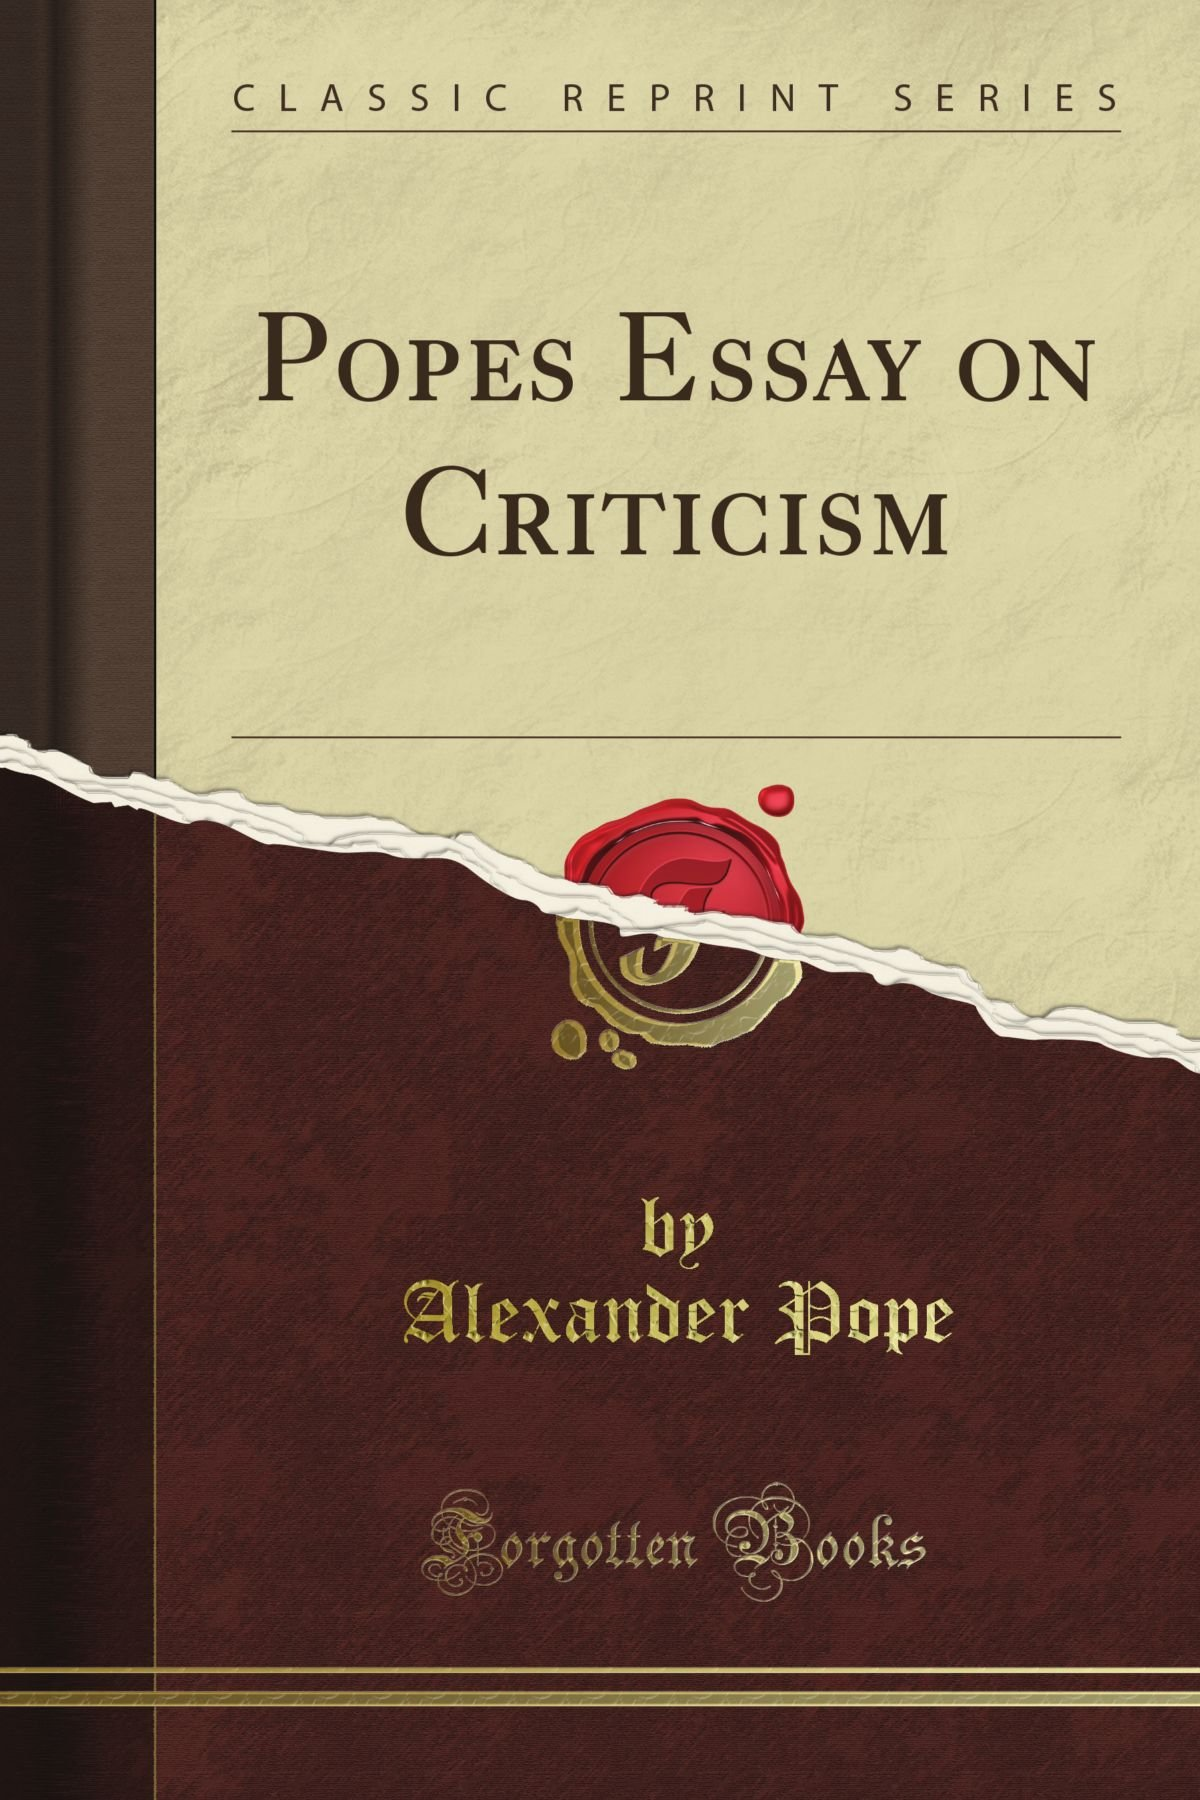 012 Pope Essay On Criticism Example Unique Part 2 Pope's Was Written In Full